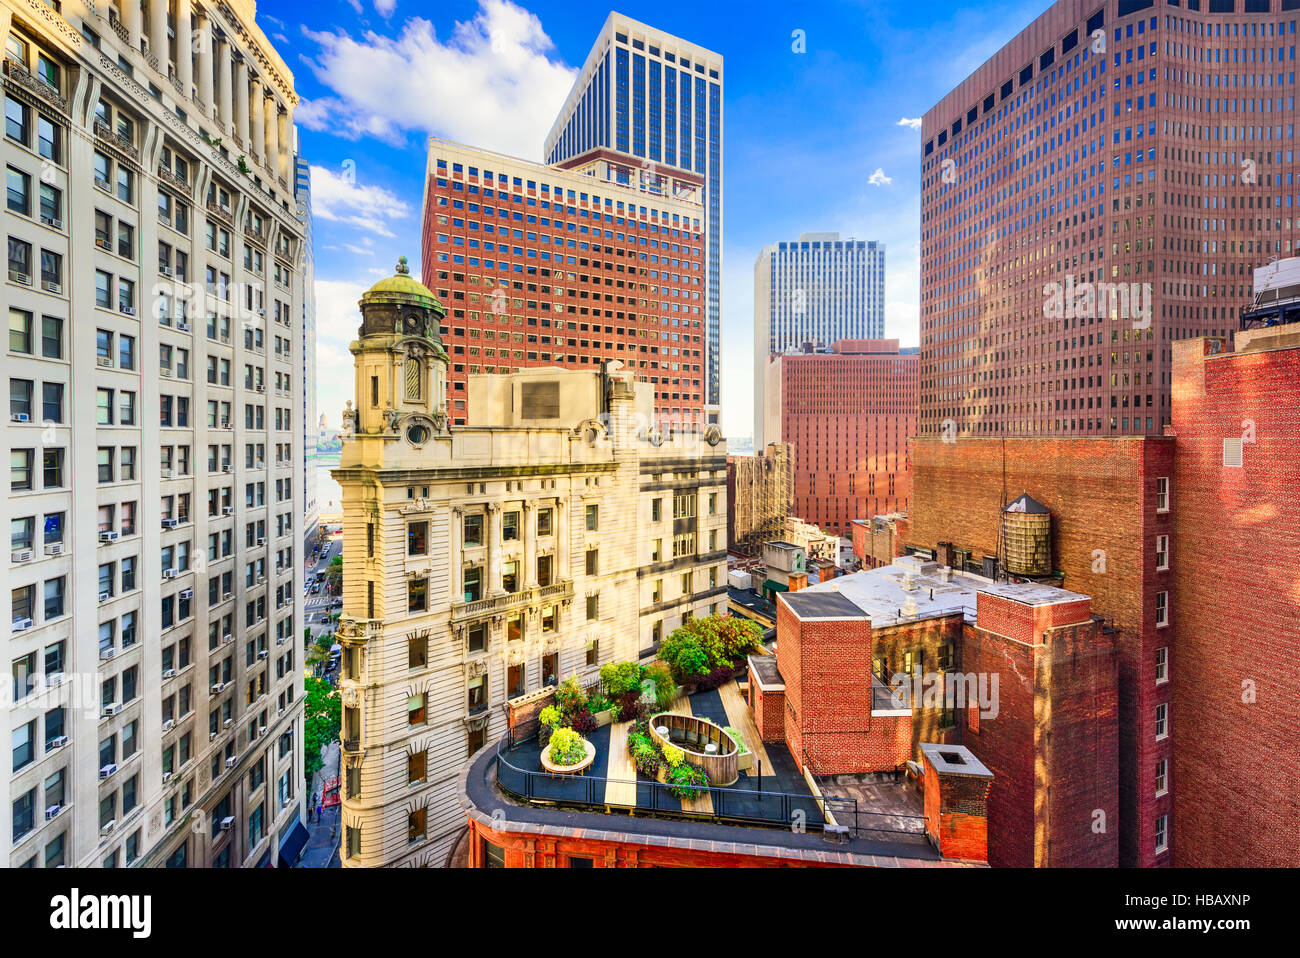 New York City cityscape amongst financial district buildings. - Stock Image